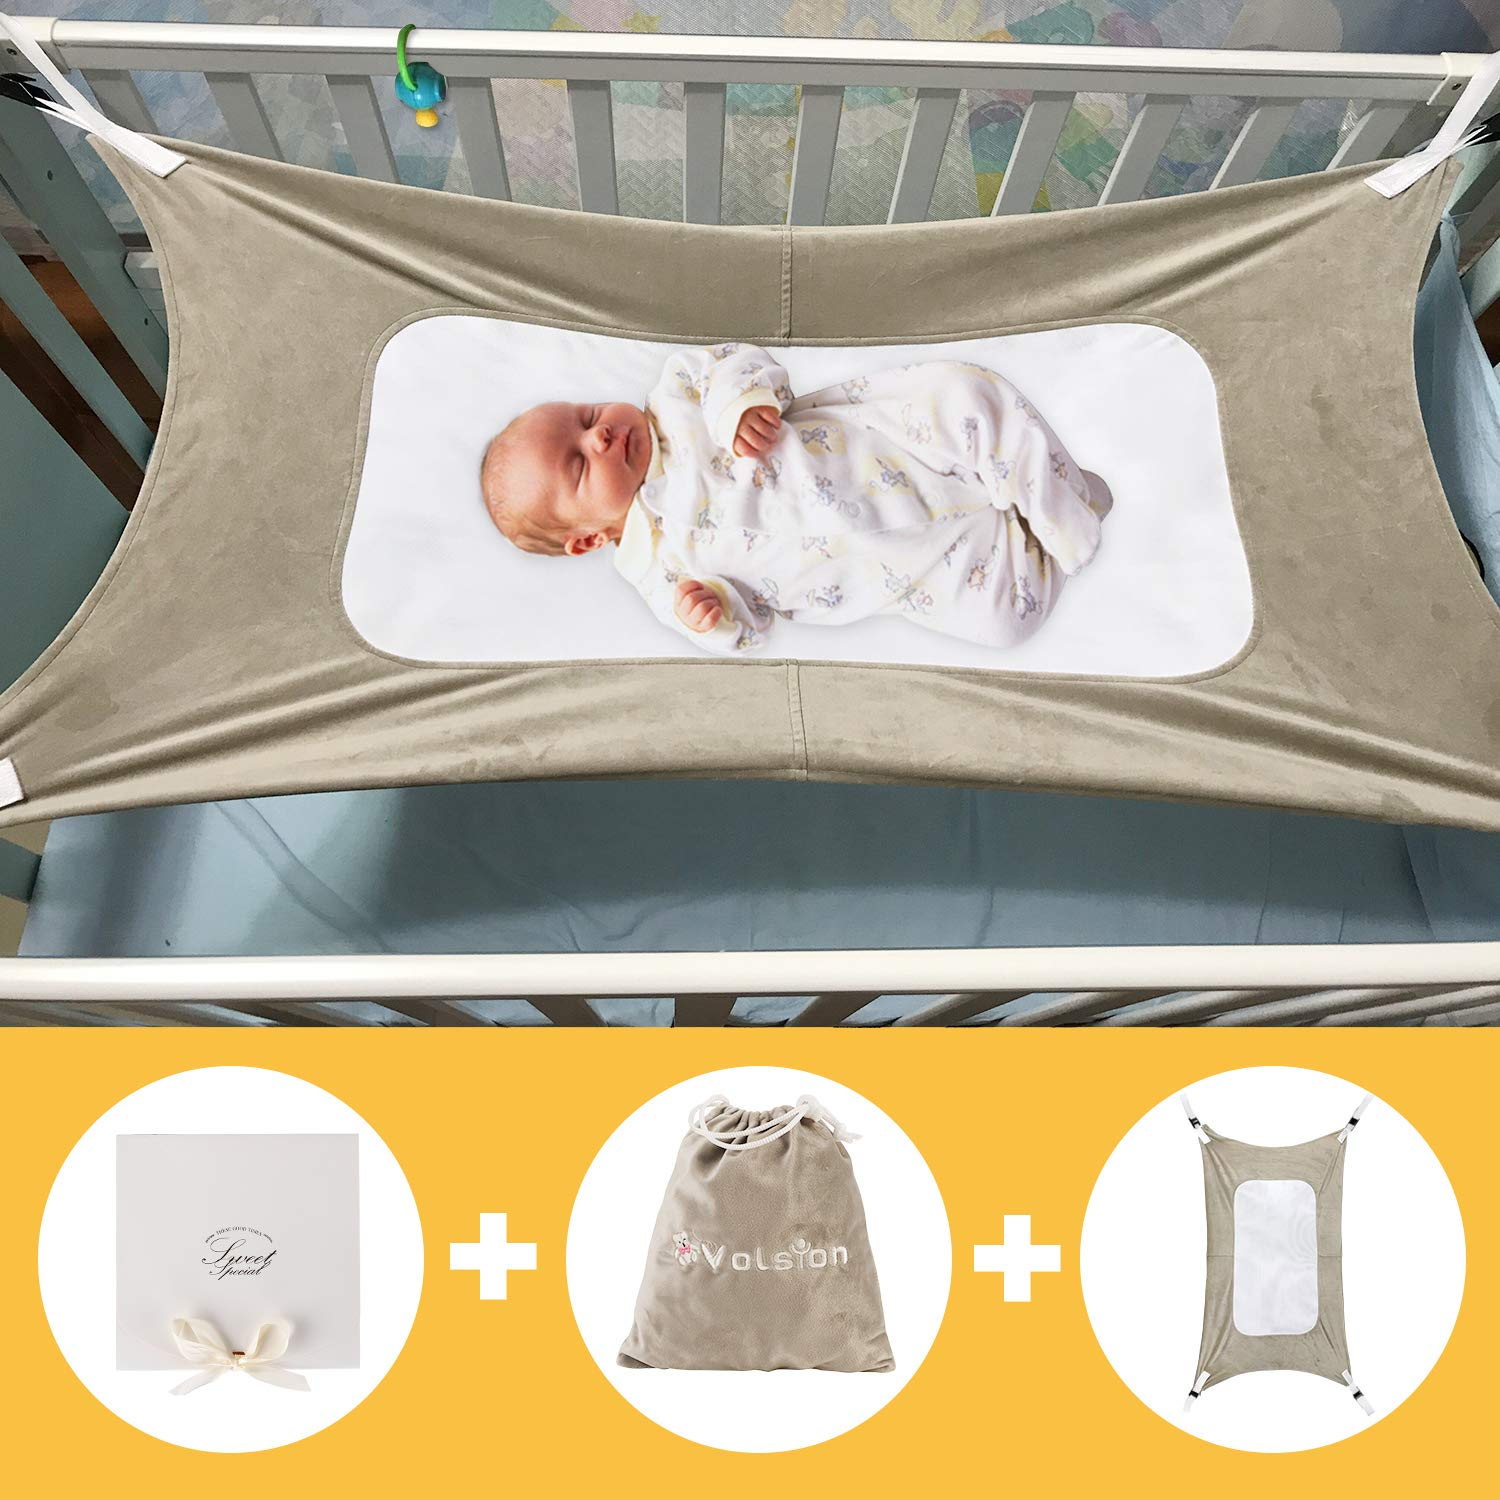 Upgraded Safety Measures Infant Nursery Bed with Portable Gift Box for Newborn Baby Shower Gift Mimics Womb Three-Layer Breathable Supportive Mesh Baby Hammock for Crib Bassinet Hammock Bed